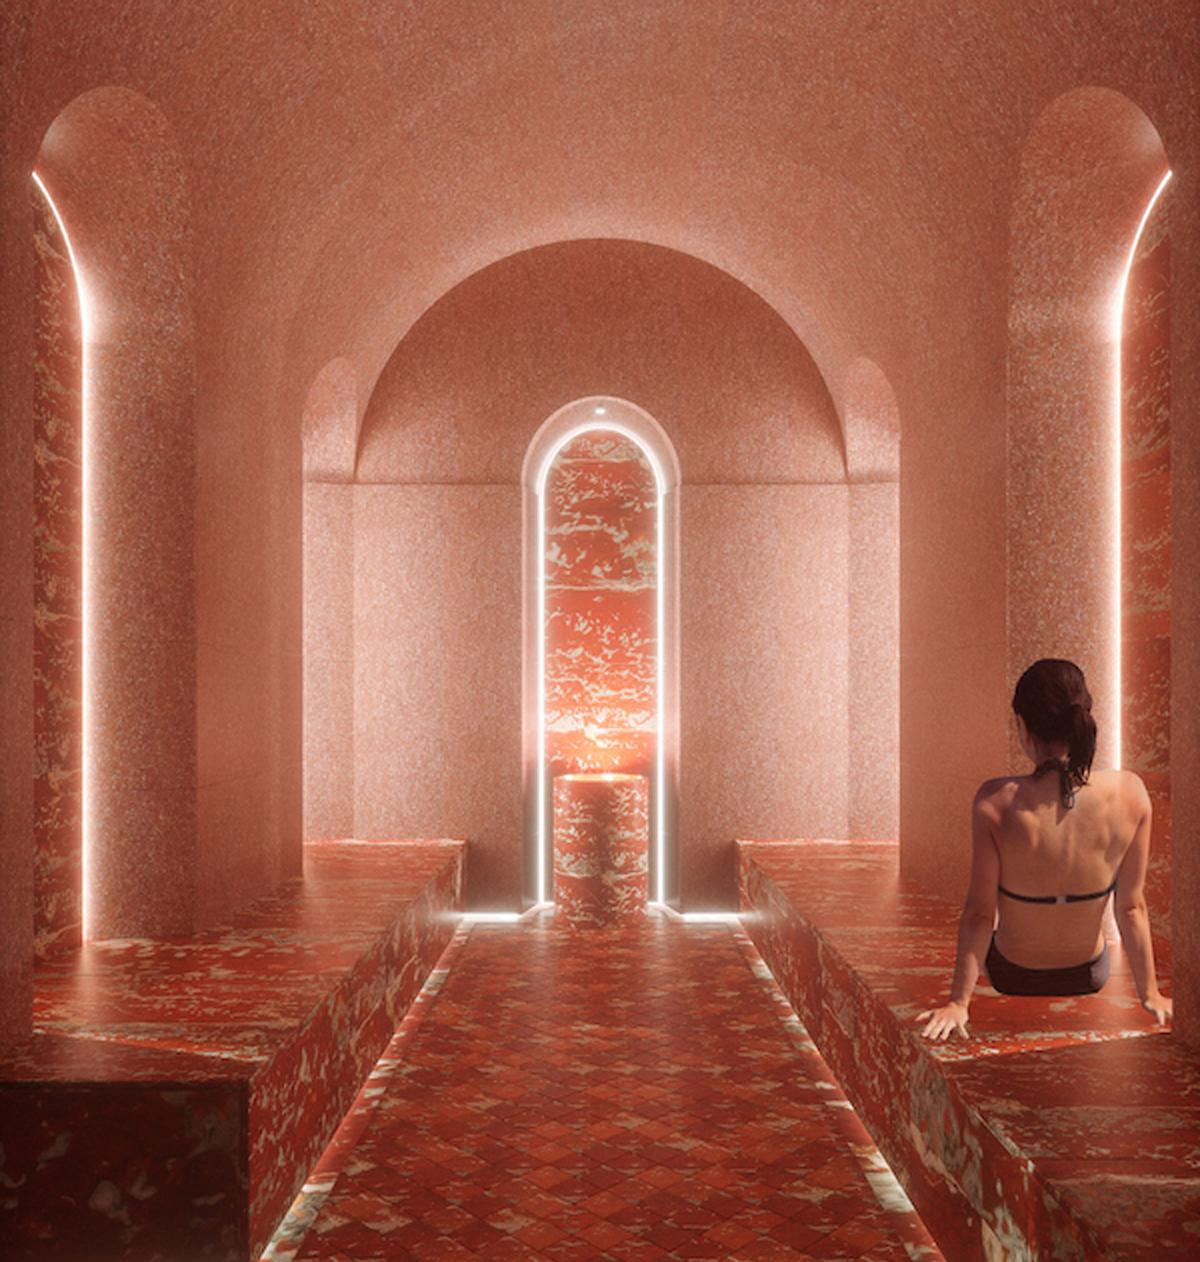 Studio Apostoli will use cedarwood, French red marble, onyx and mosaic, gold finishes and cashmere fabrics to recall the ancient destination of Palazzo Bernasconi